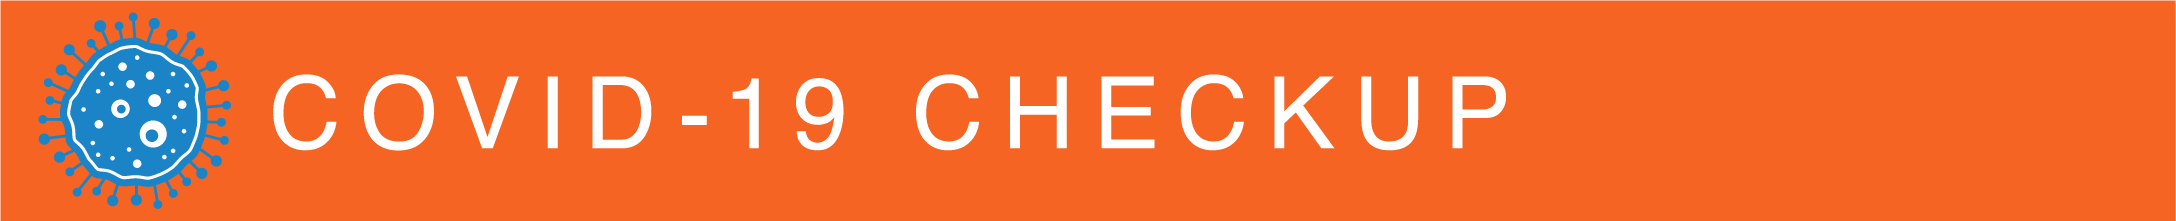 SHSU_COVID_Checkup_HeaderNewsletter